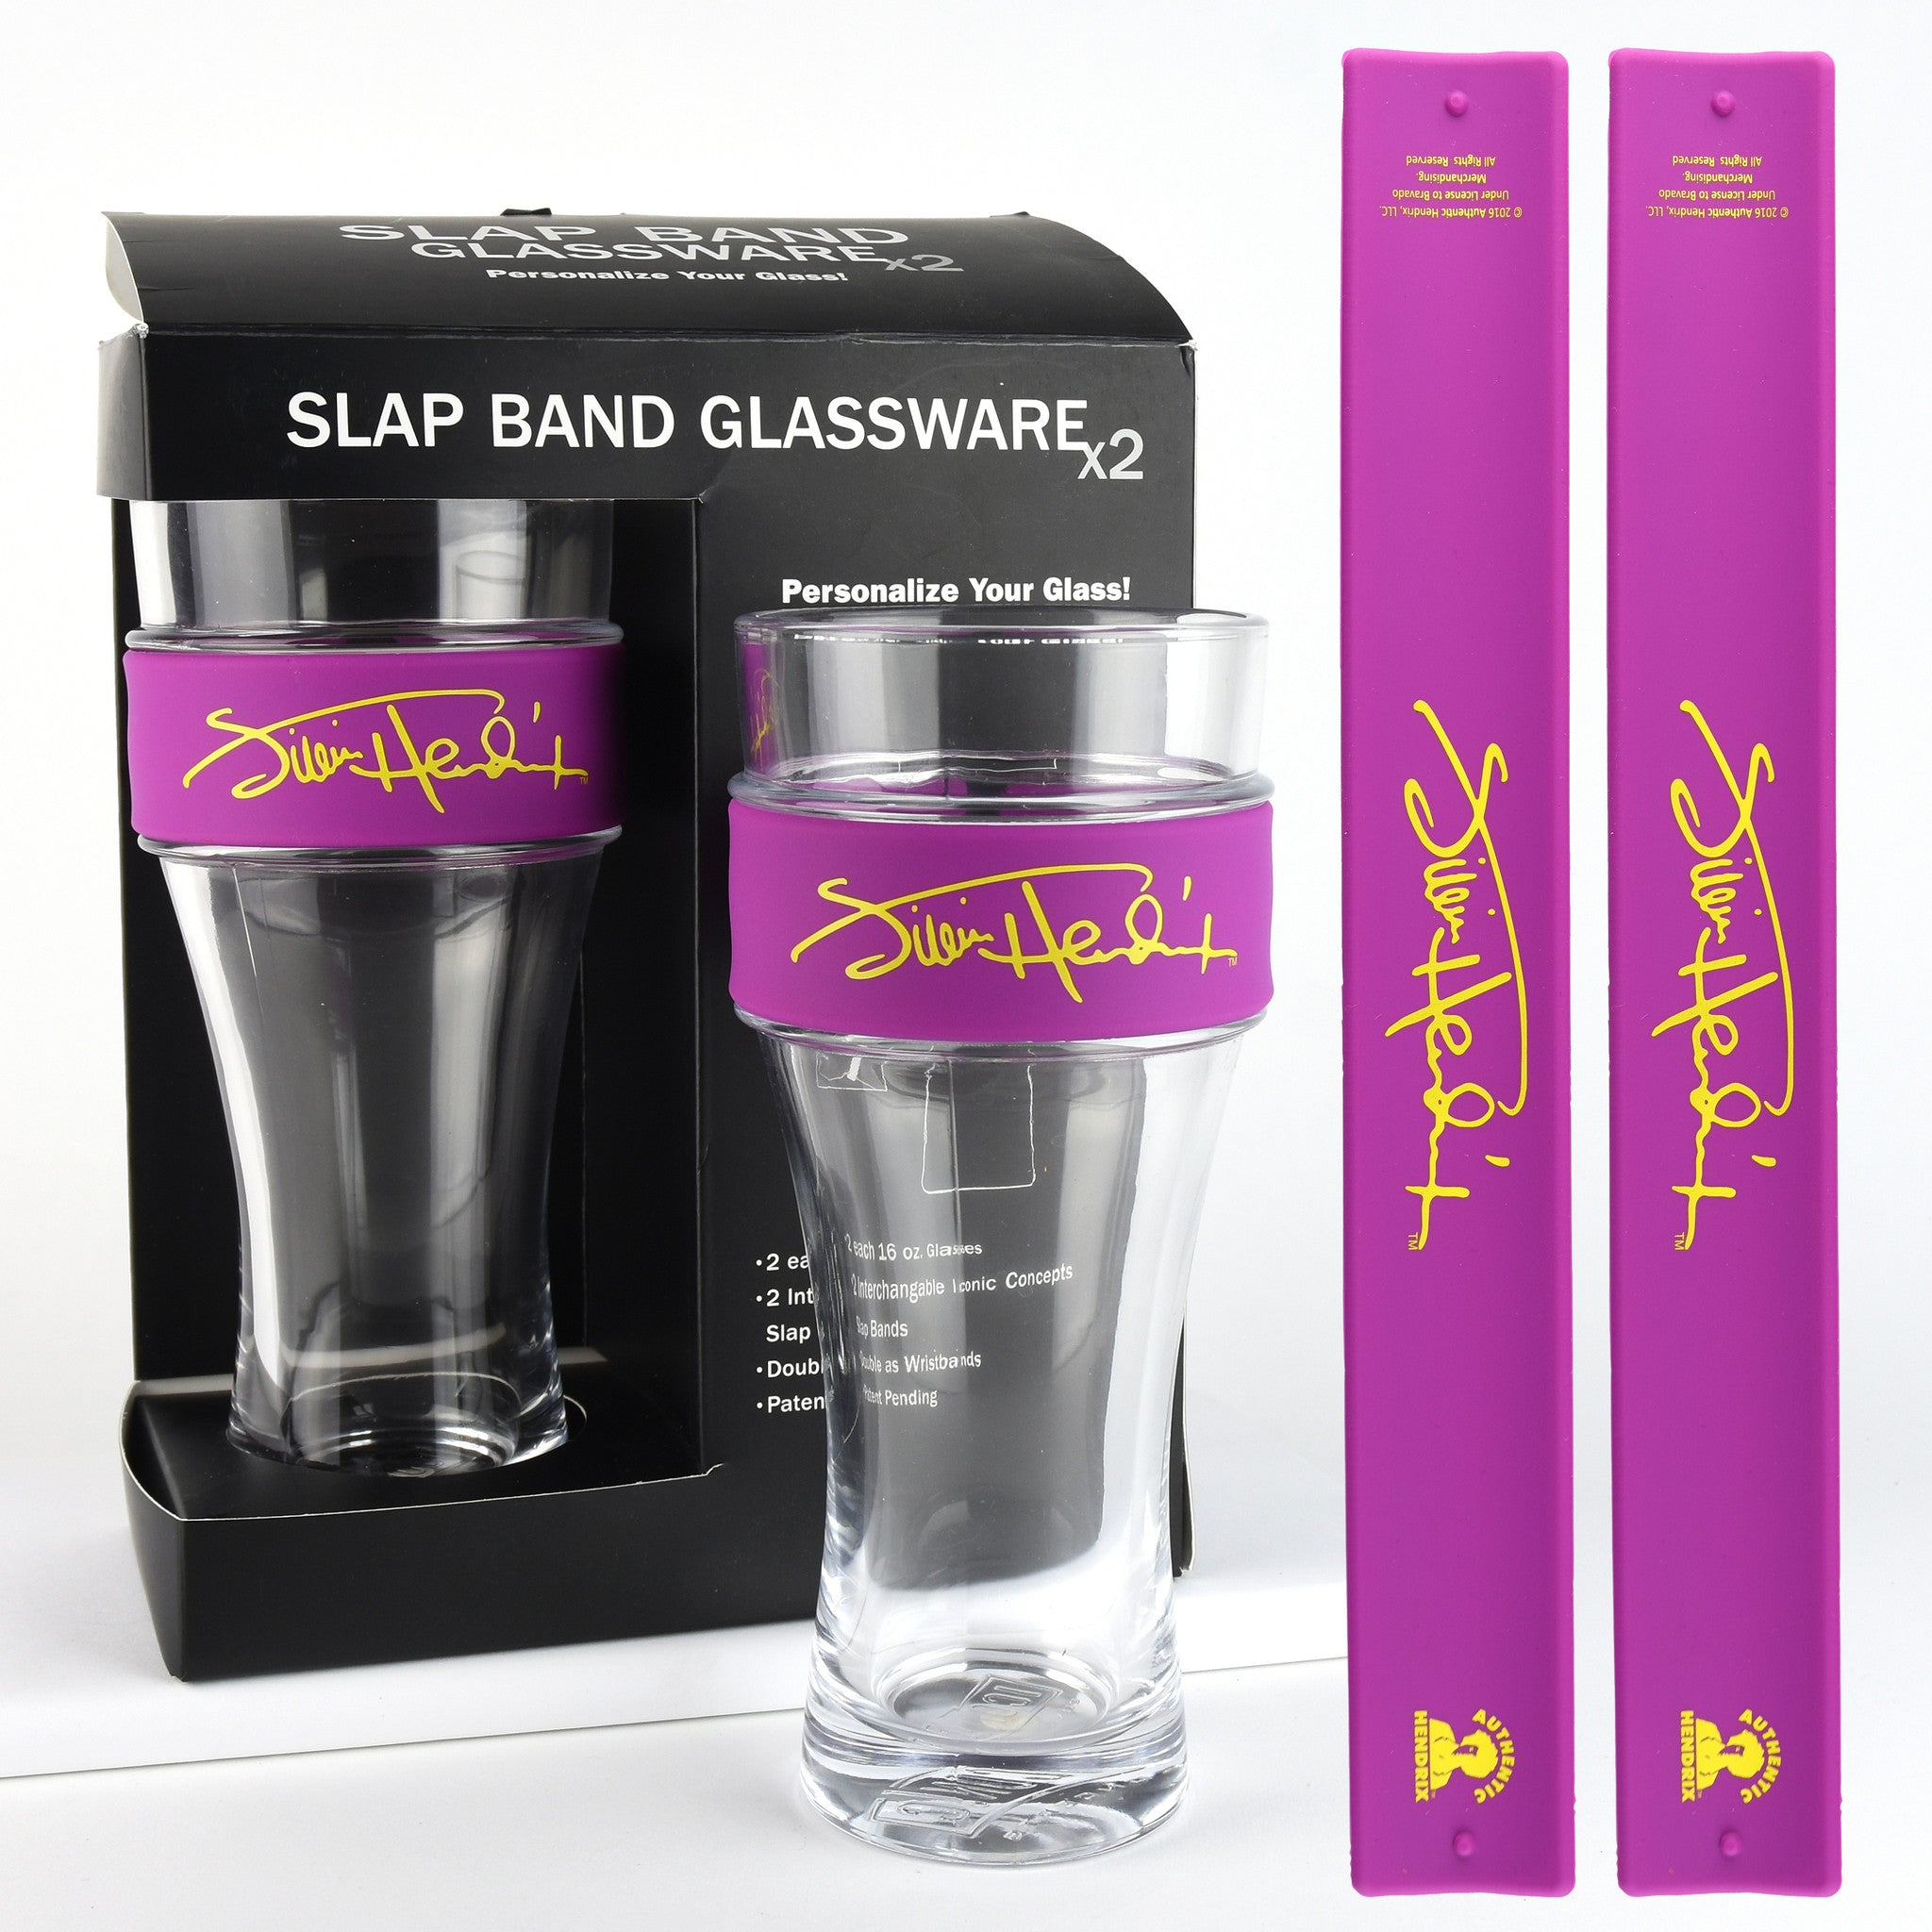 Jimi Hendrix - 2 Pack Slap Band Glassware Purple Slap Band w/Yellow Jimi Hendrix Logo